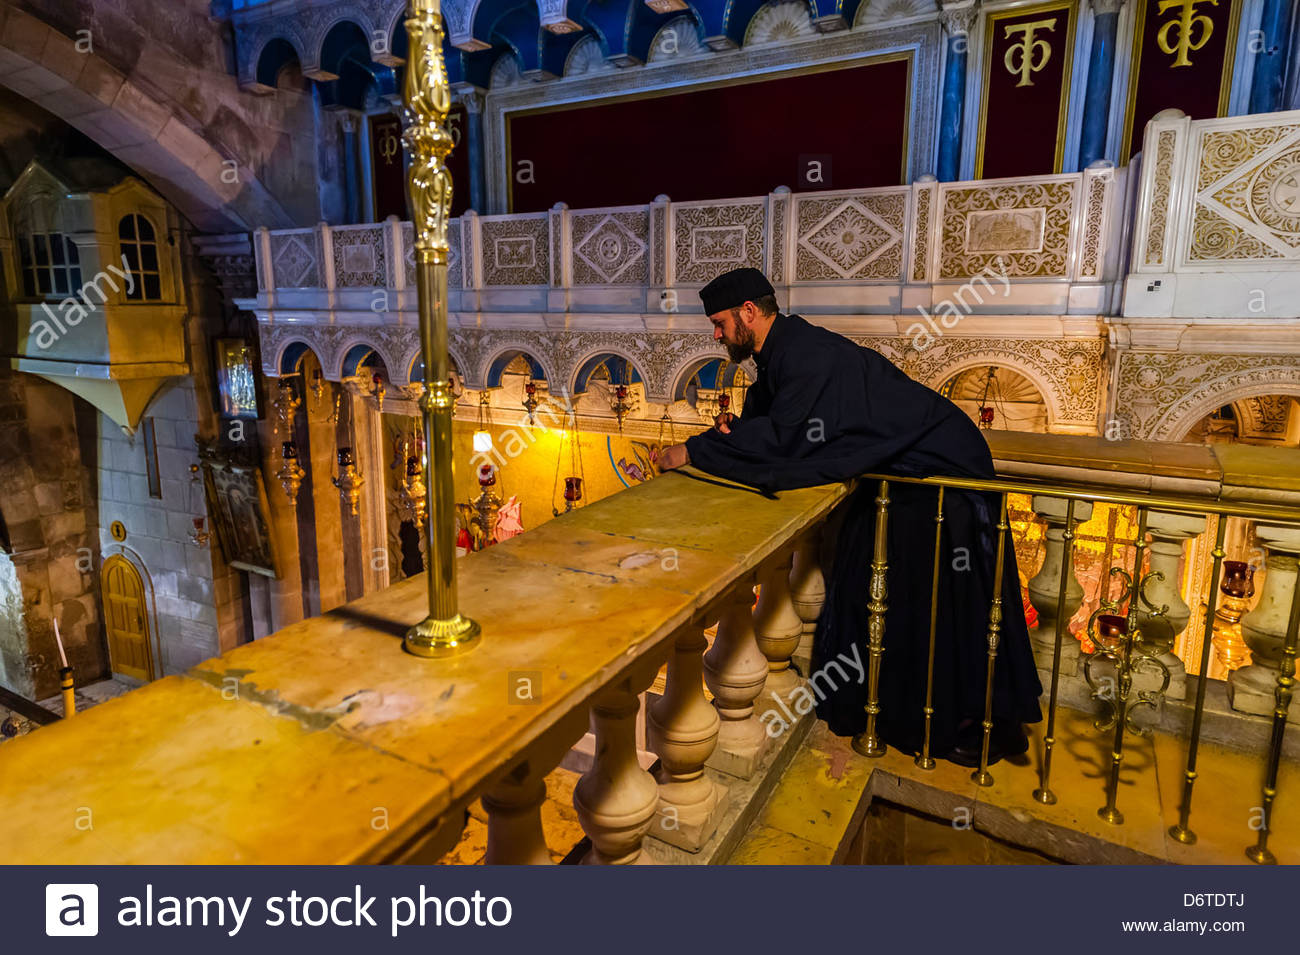 An Armenian Orthodox mass, Church of the Holy Sepulchre, he Christian Quarter, Old City, Jerusalem, Israel. - Stock Image